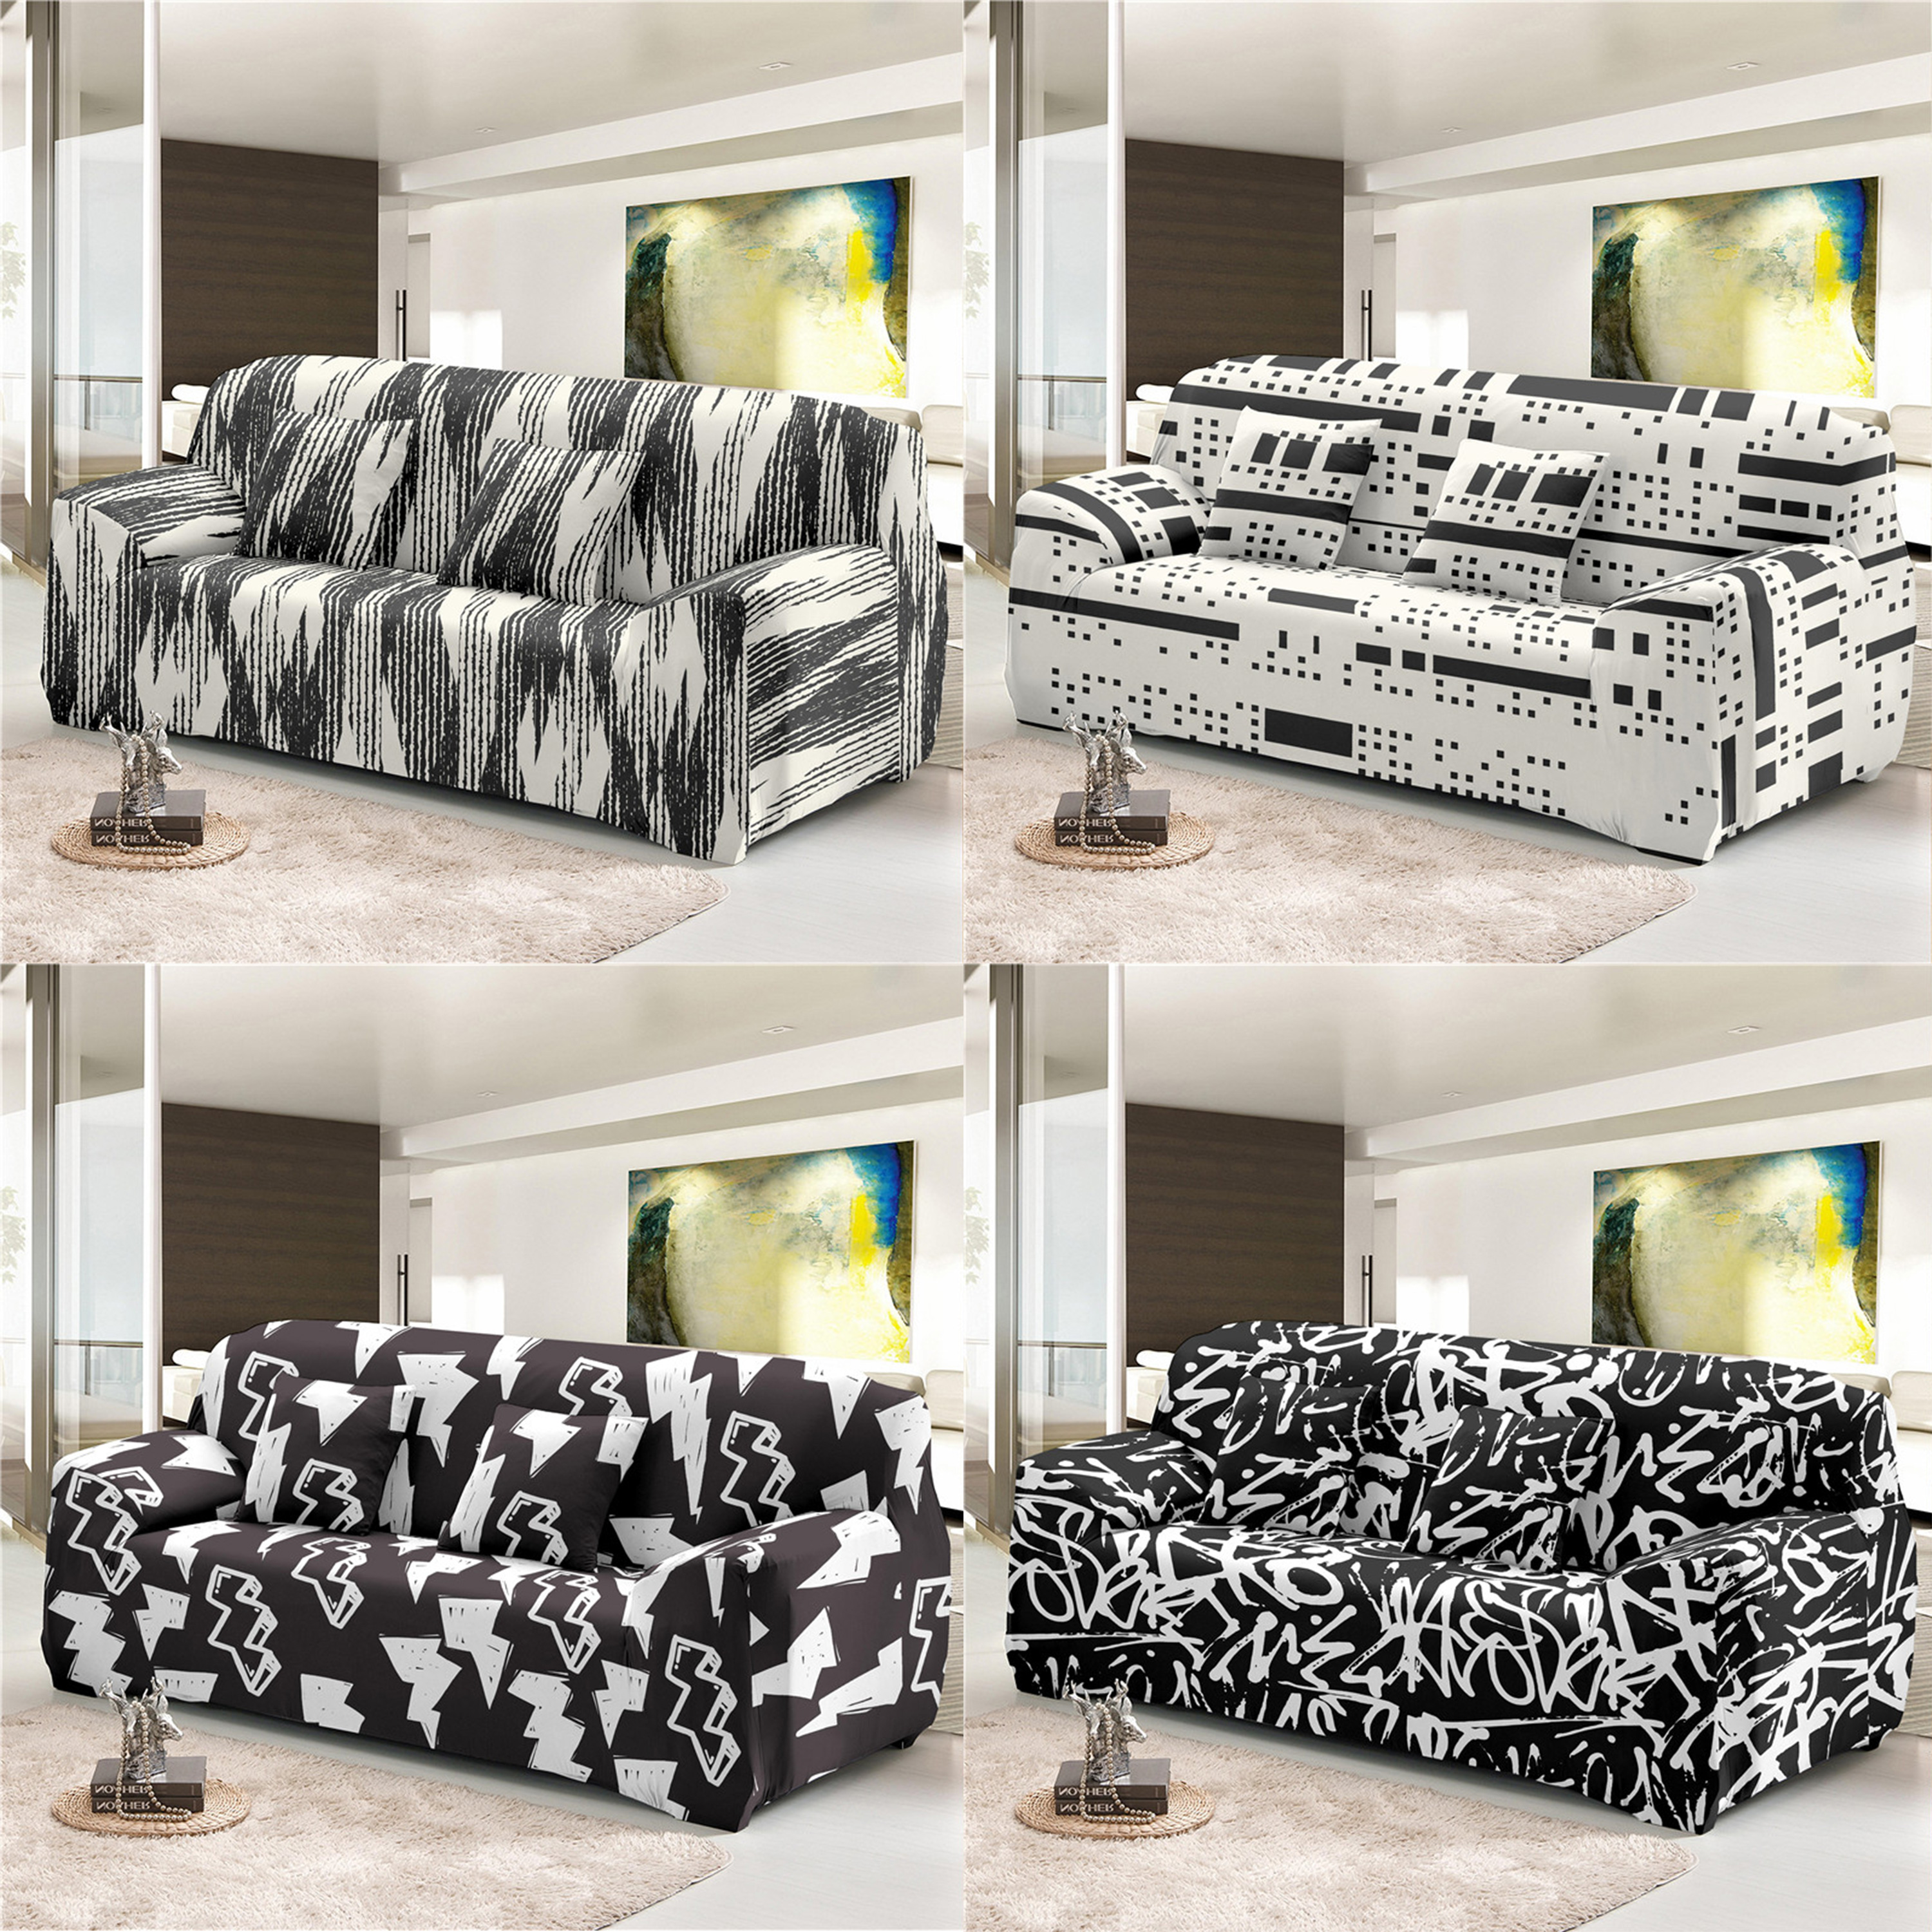 Zeimon Geometric Sofa Cover Black White All Inclusive Slip Resistant Sectional Couch Cover Loveseat Home Decor For Living Room Sofa Cover Home Garden Aliexpress